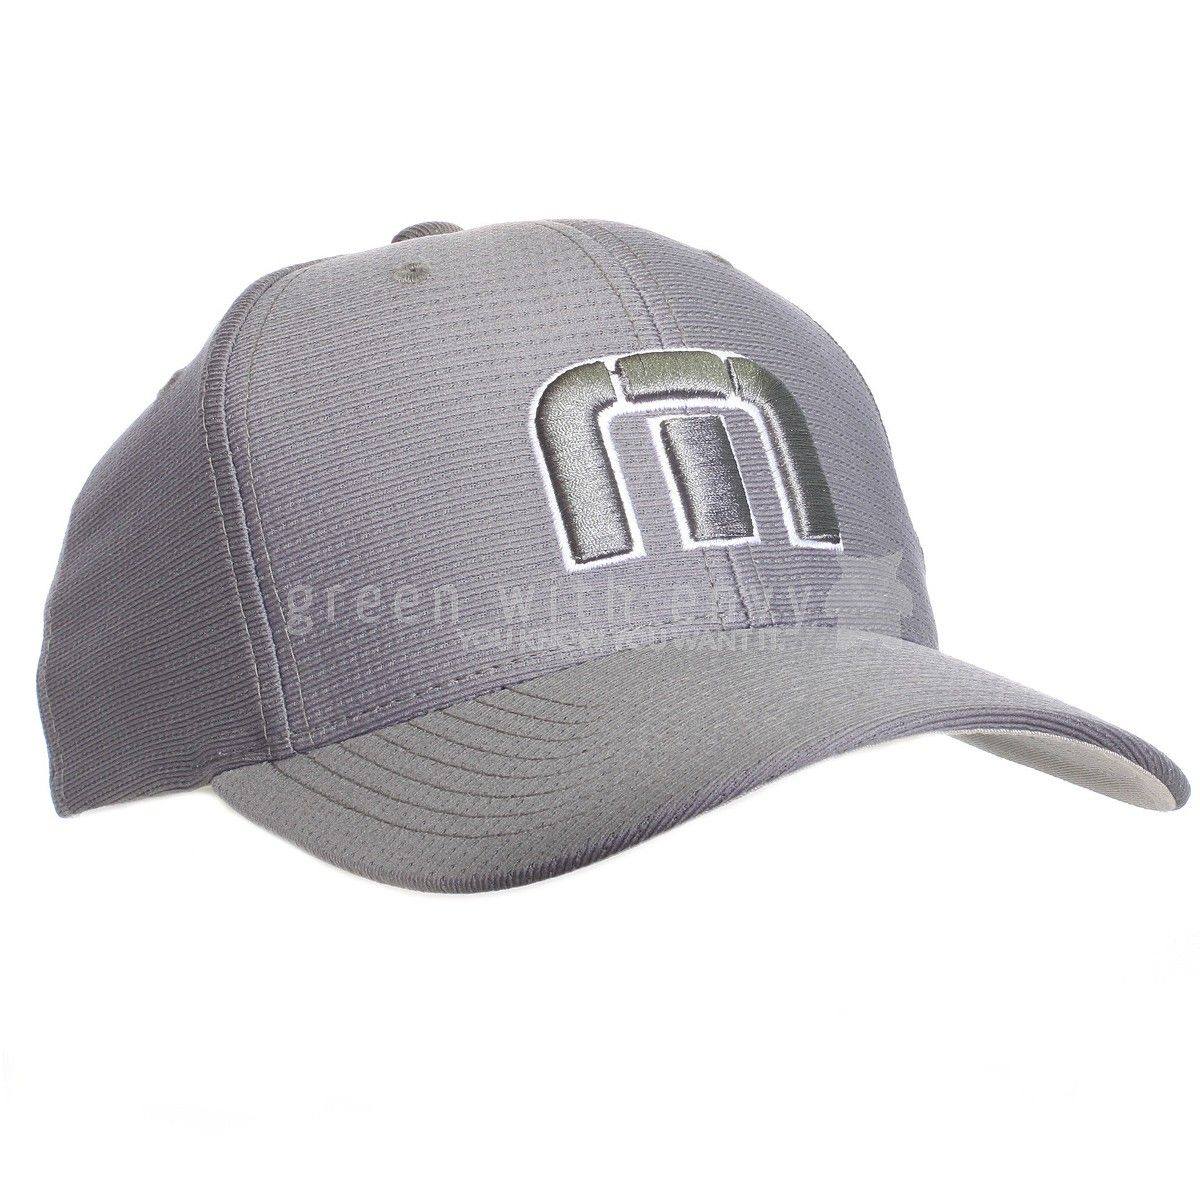 Soft Mesh Hat With Flex Fit Band Embroidered Tm Logo With Outline Travis  Mathew